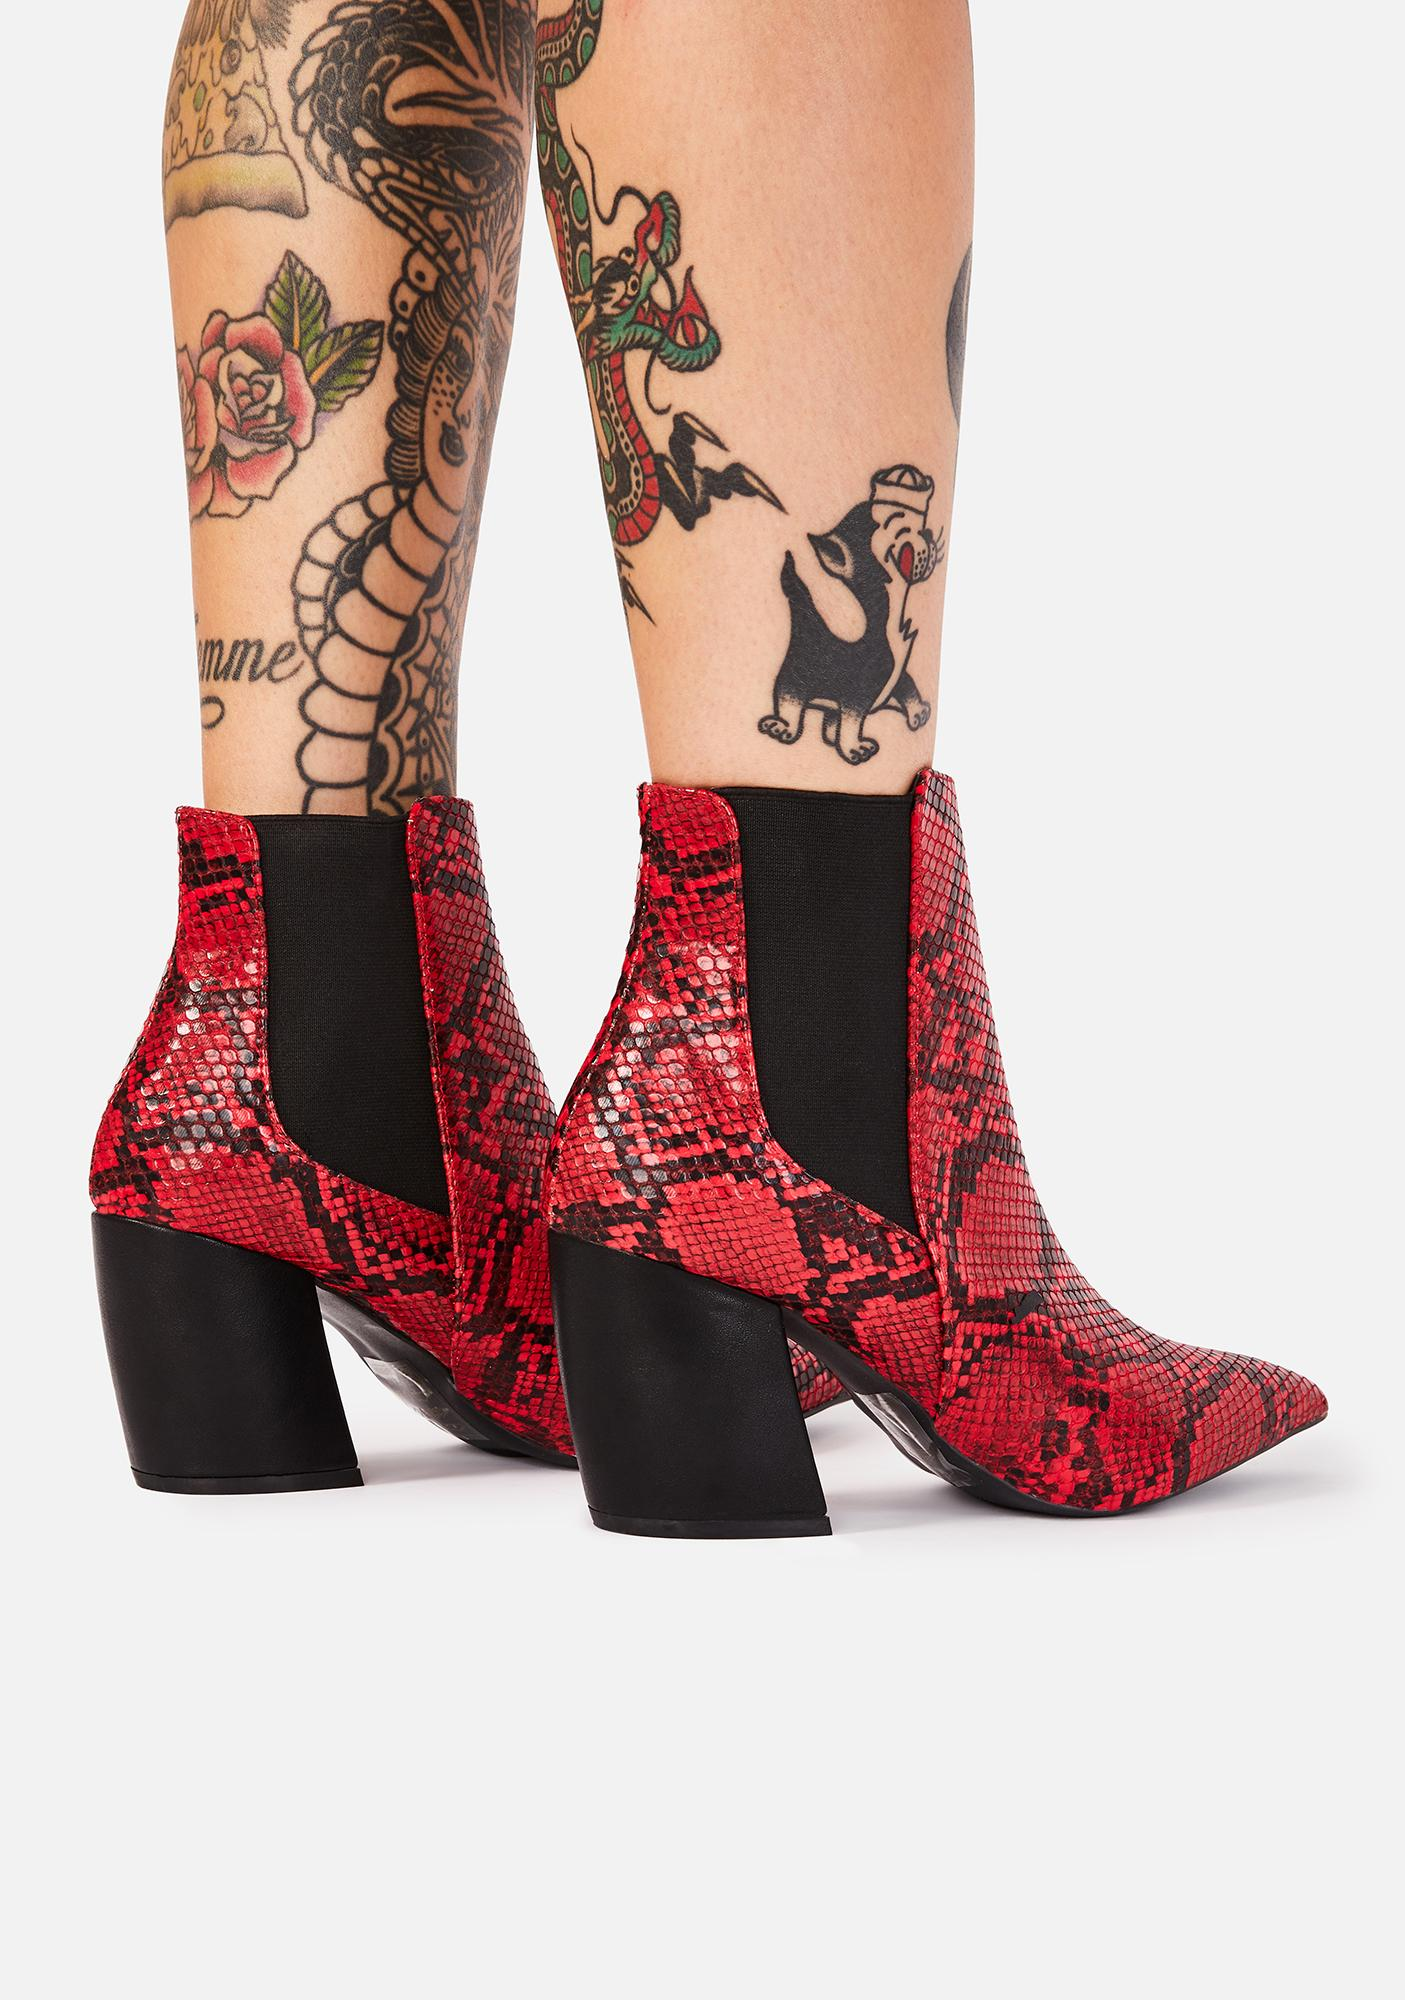 Born Fierce Ankle Boots